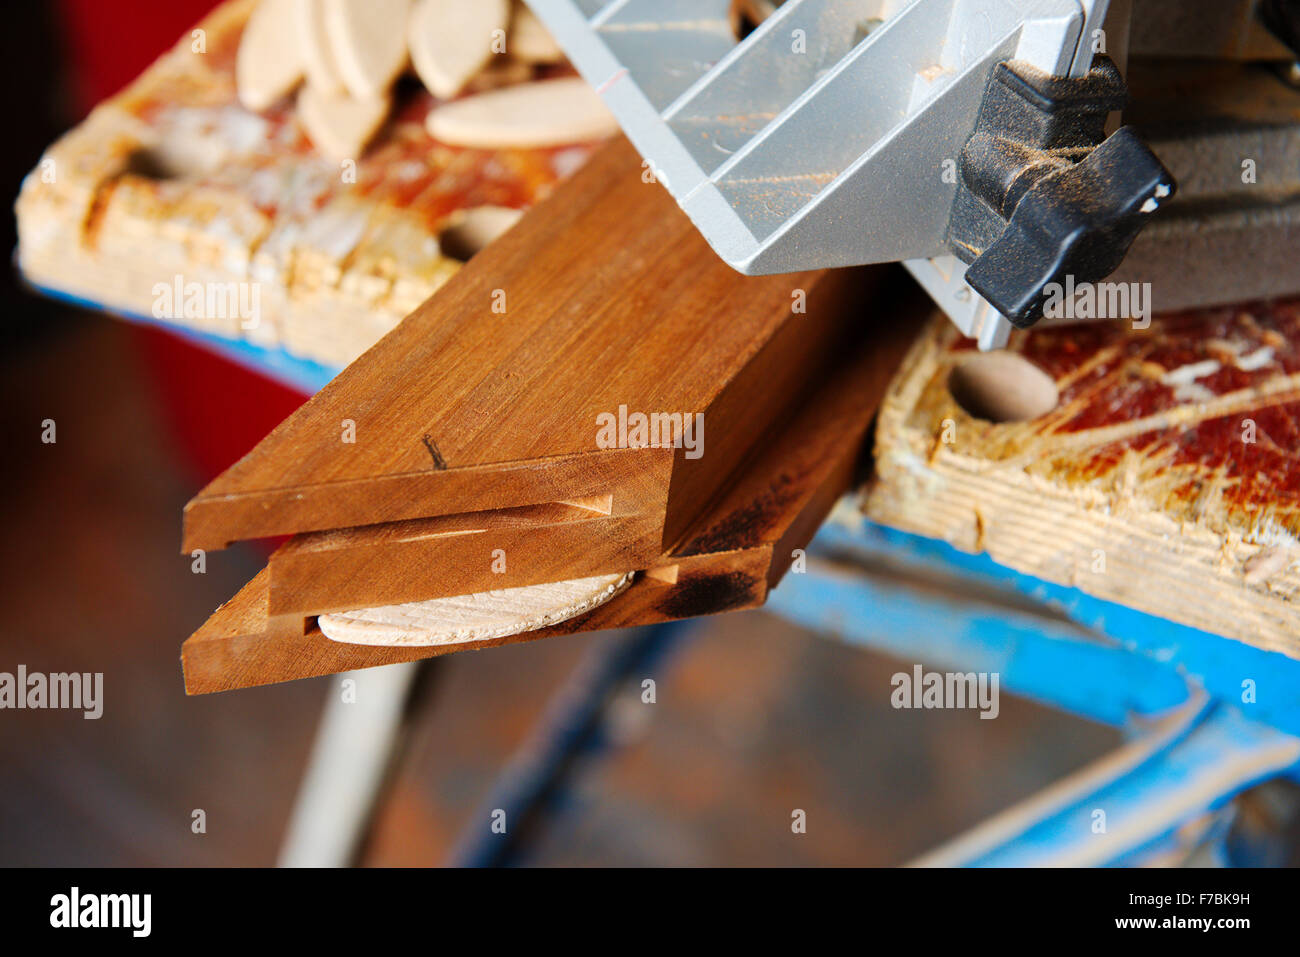 Wooden frame with mitre cut to make a square corner and double slots for jointing biscuits, one inserted - Stock Image